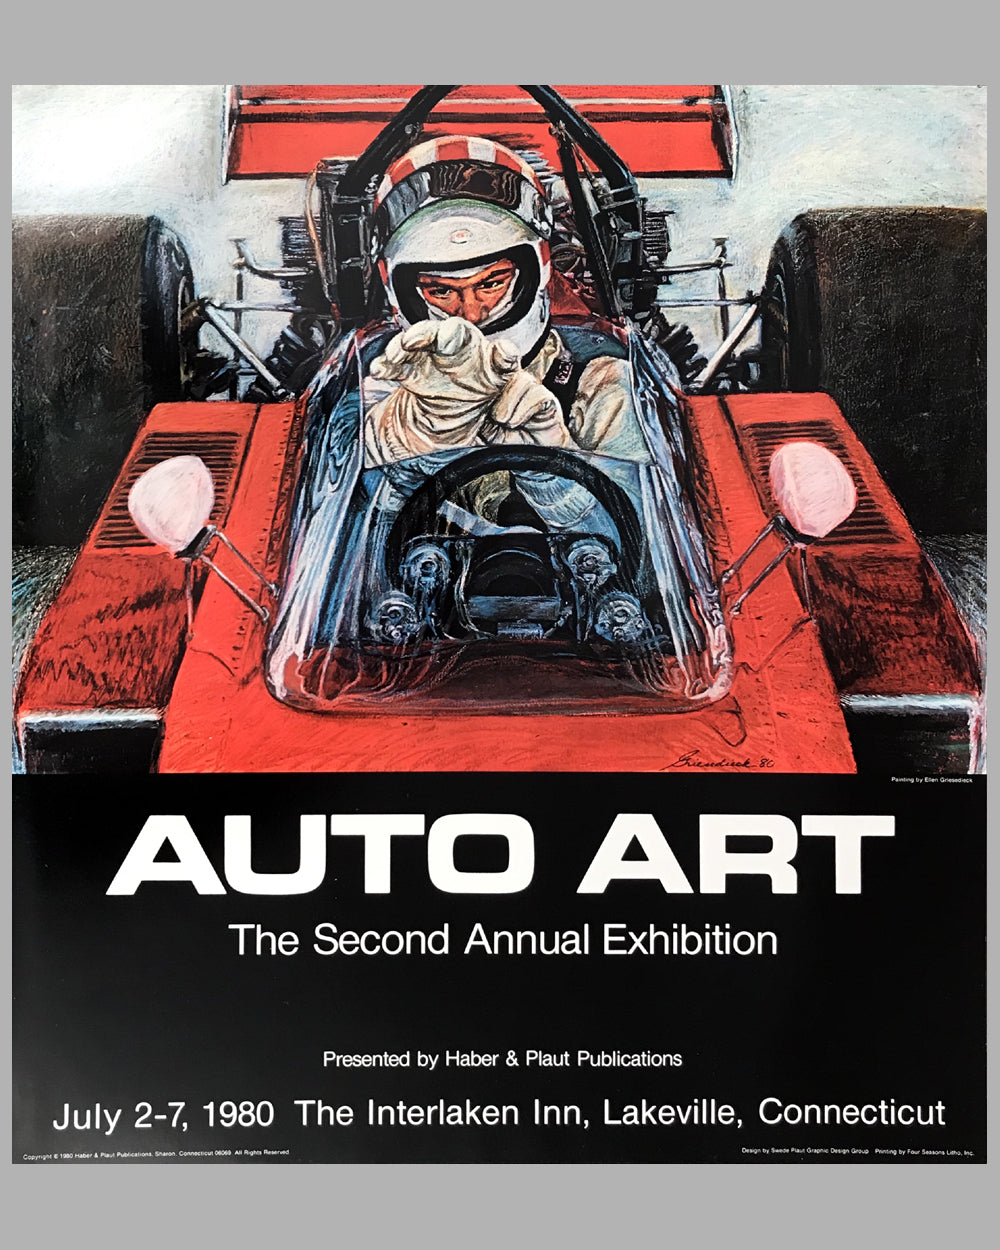 2nd Annual Auto Art Exhibition poster 1980